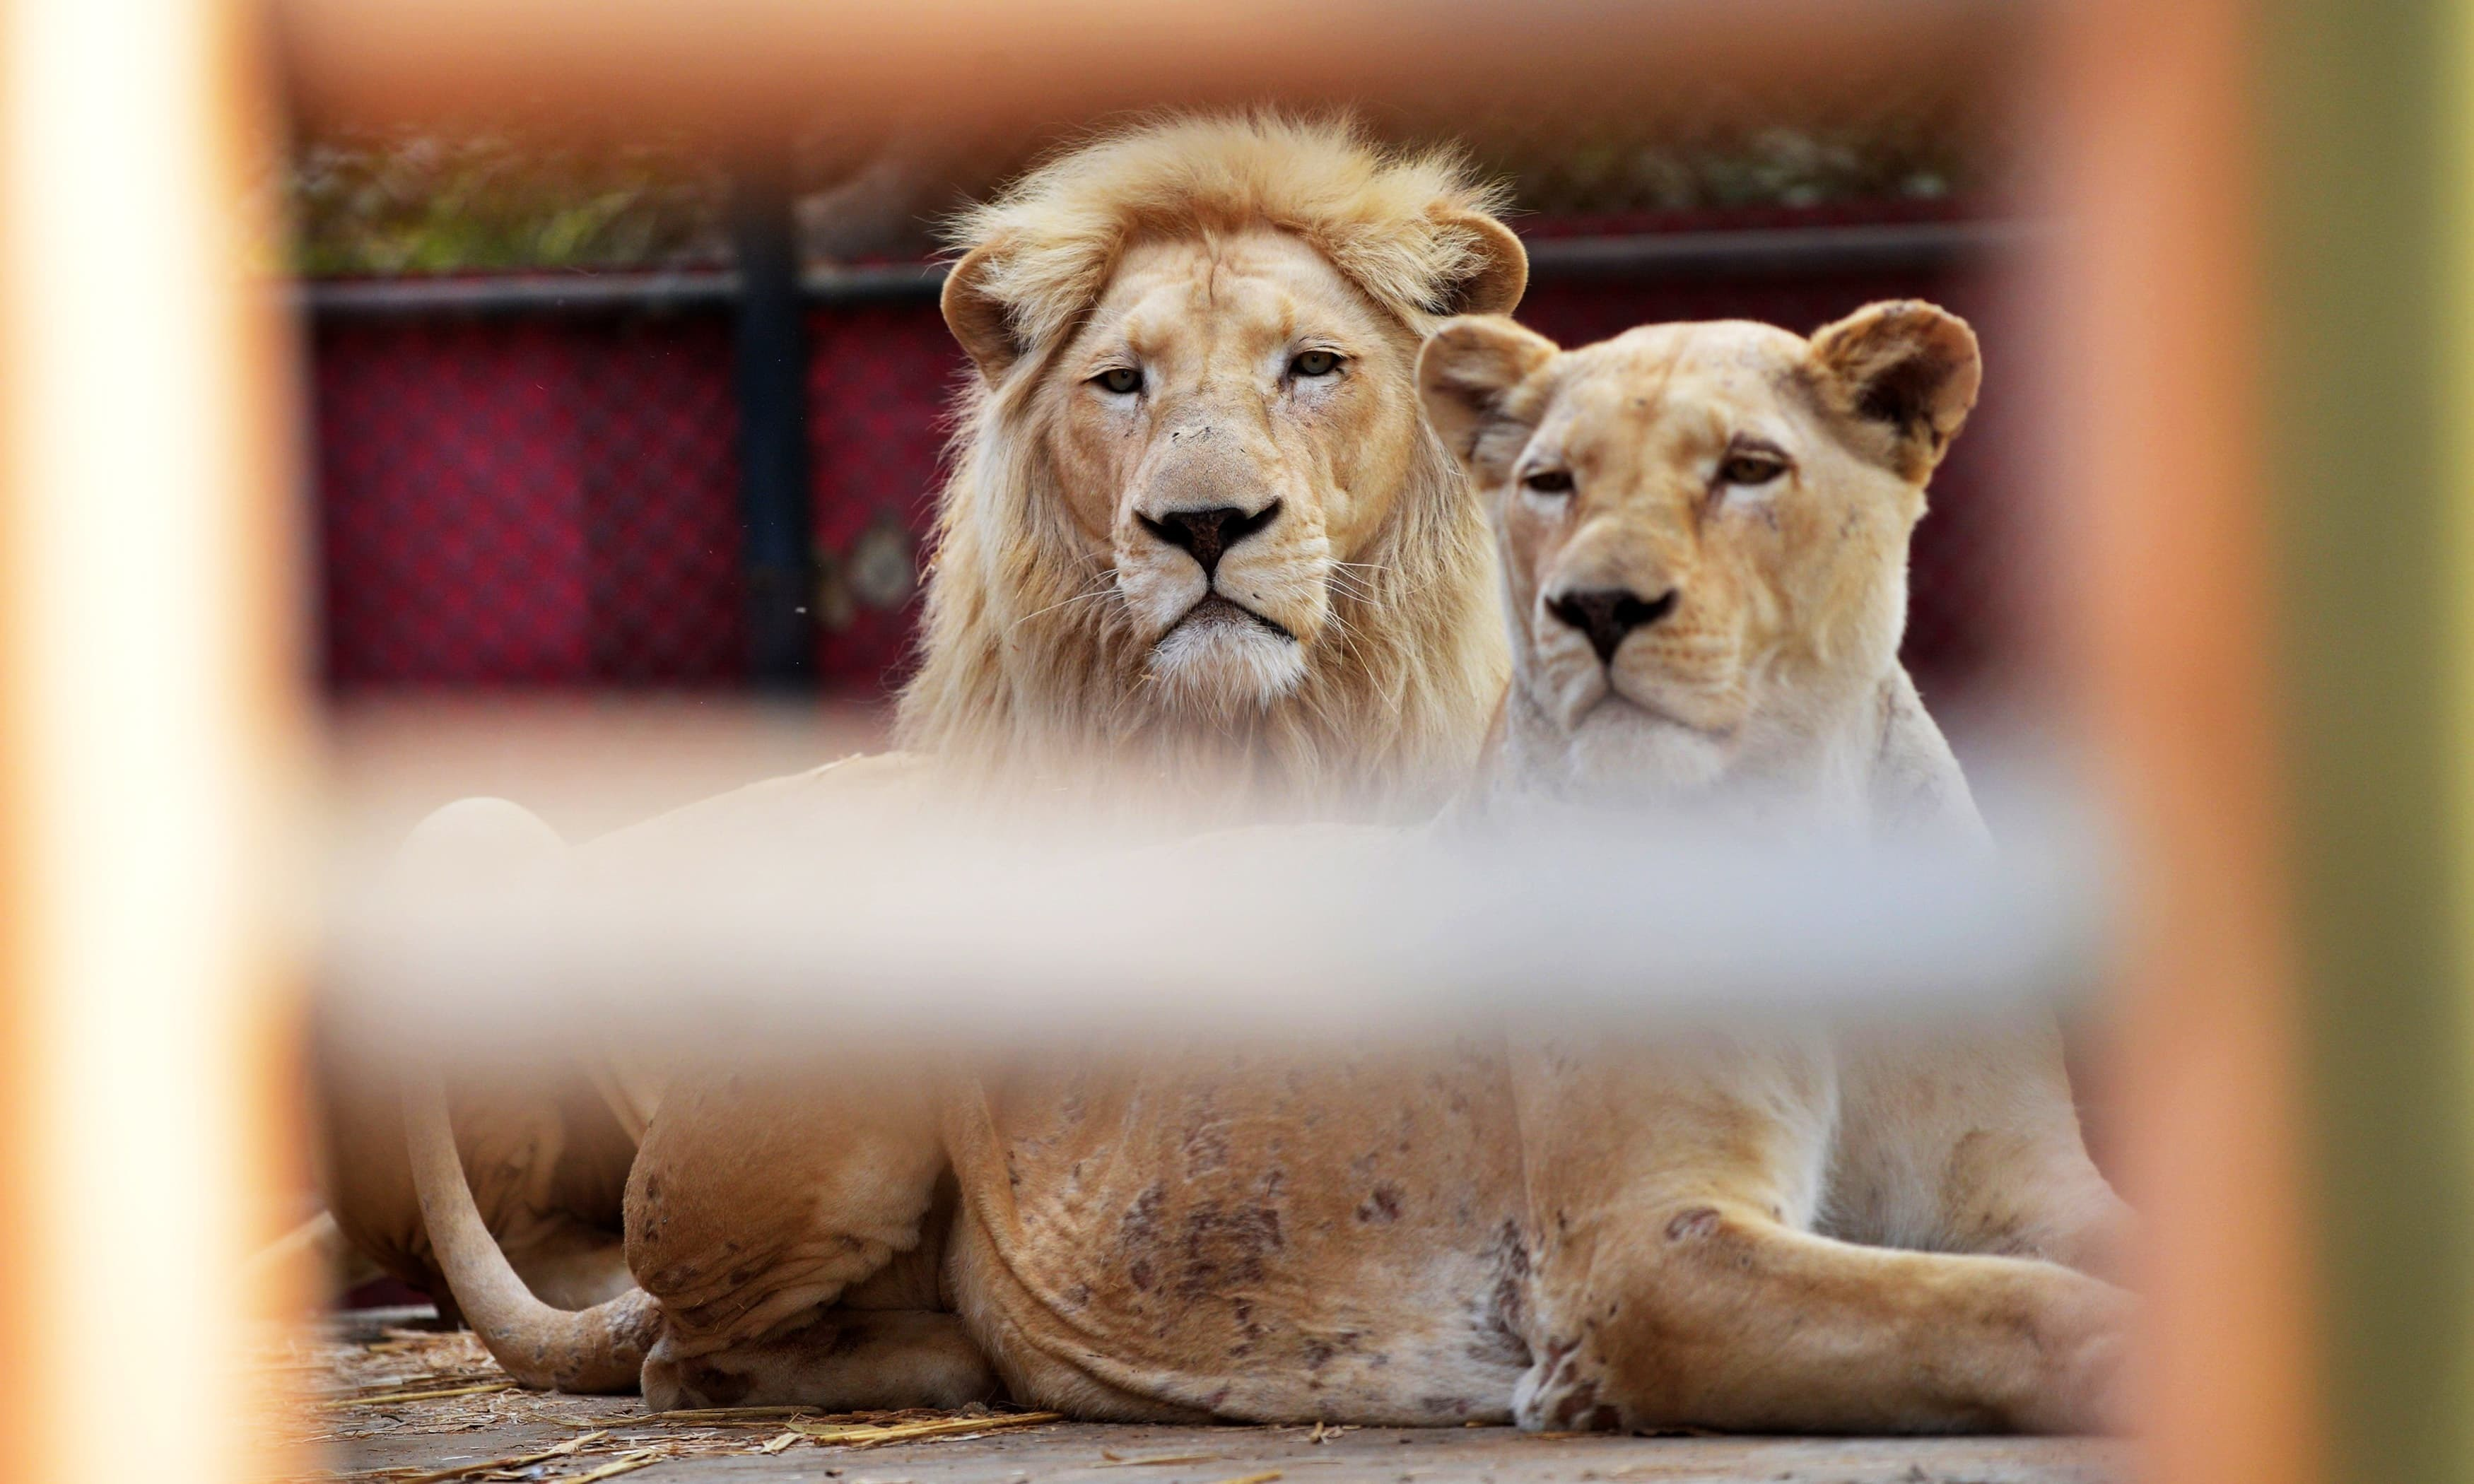 The big cat had been in the zoo since 2017 following its rescue along with another lion from a circus being organised in the city. — AFP/File